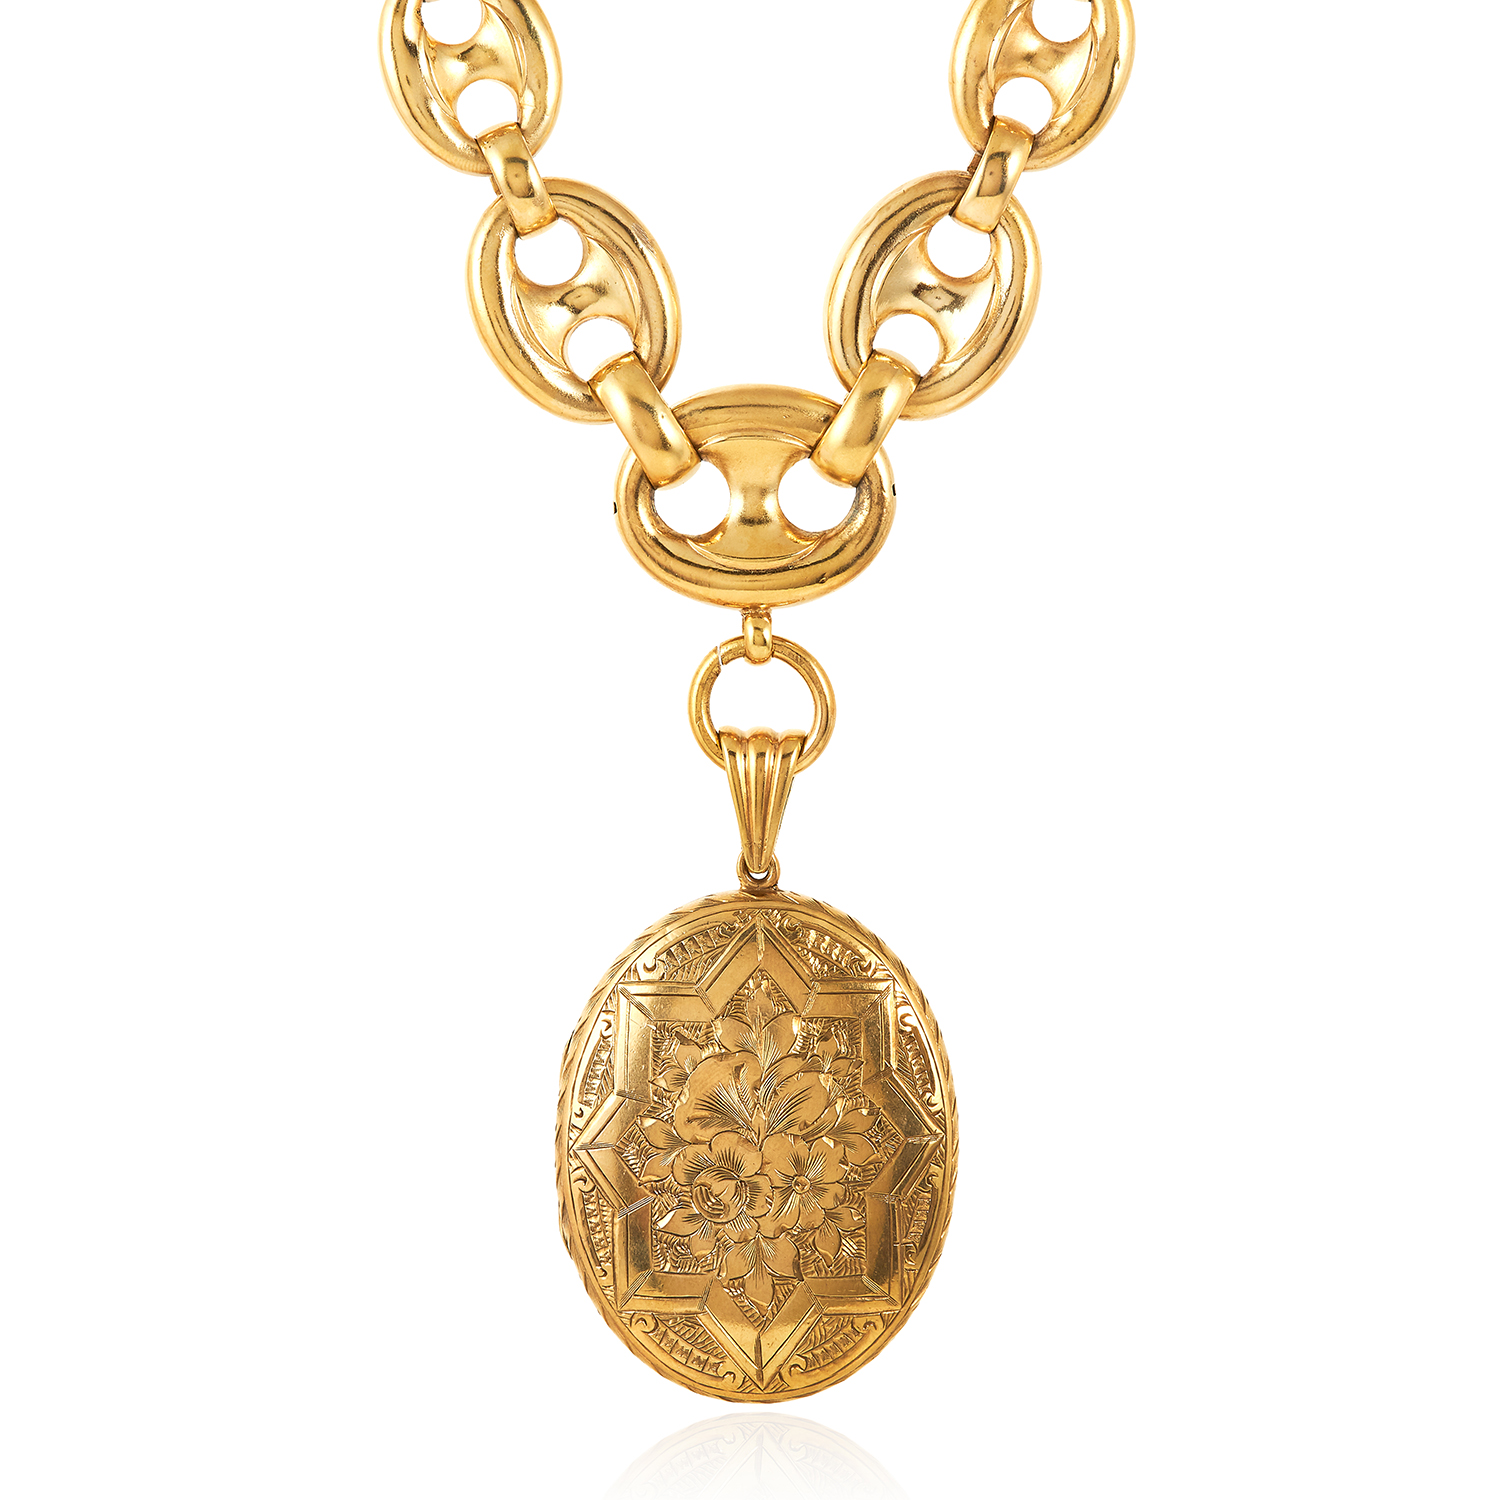 Los 9 - AN ANTIQUE LOCKET AND CHAIN comprising of an oval locket engraved with foliate and star motif, on